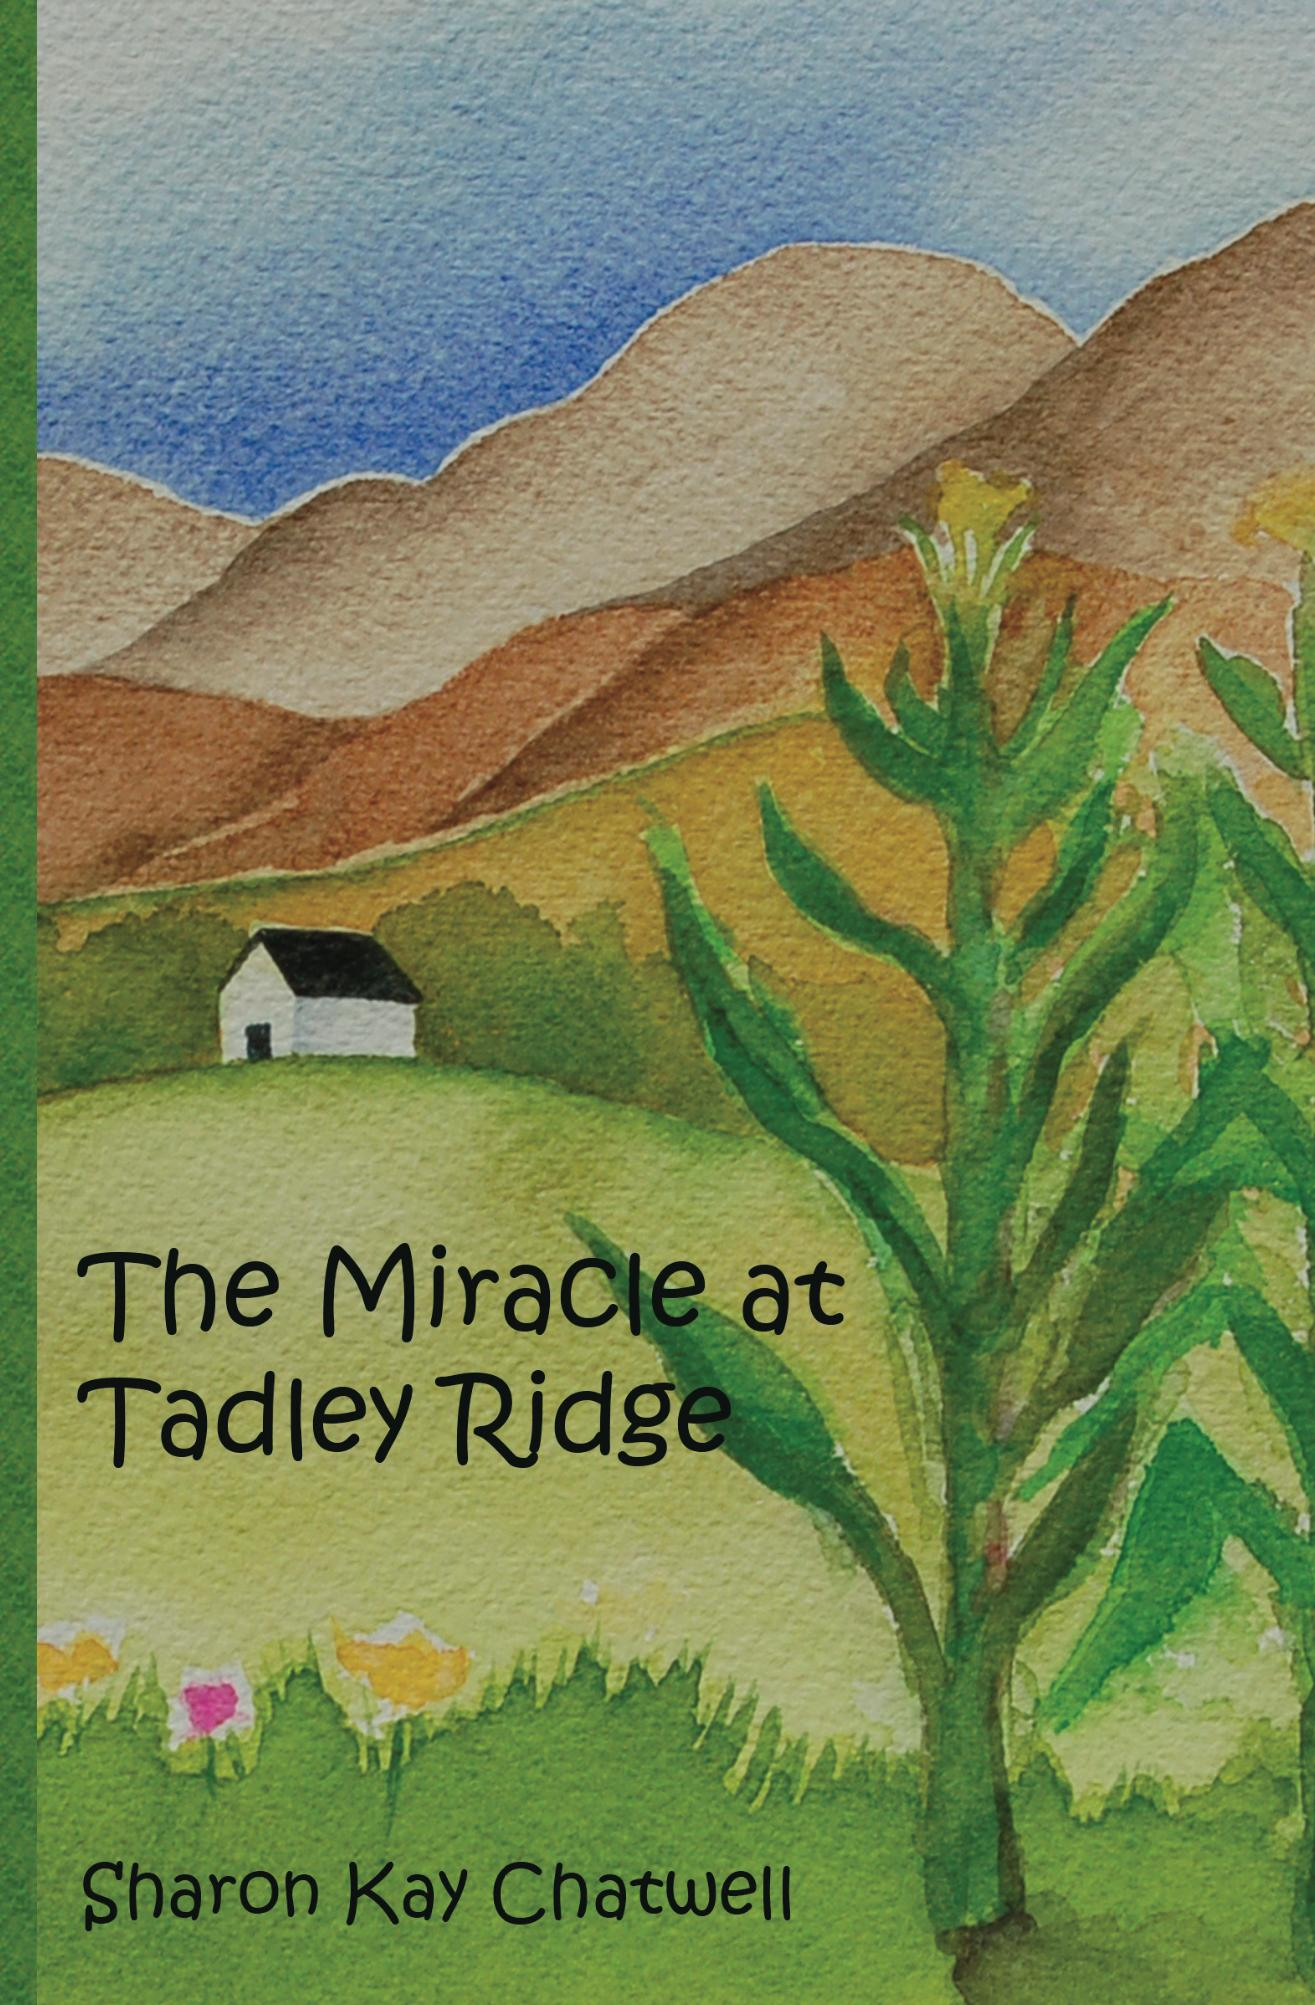 The Miracle at Tadley Ridge